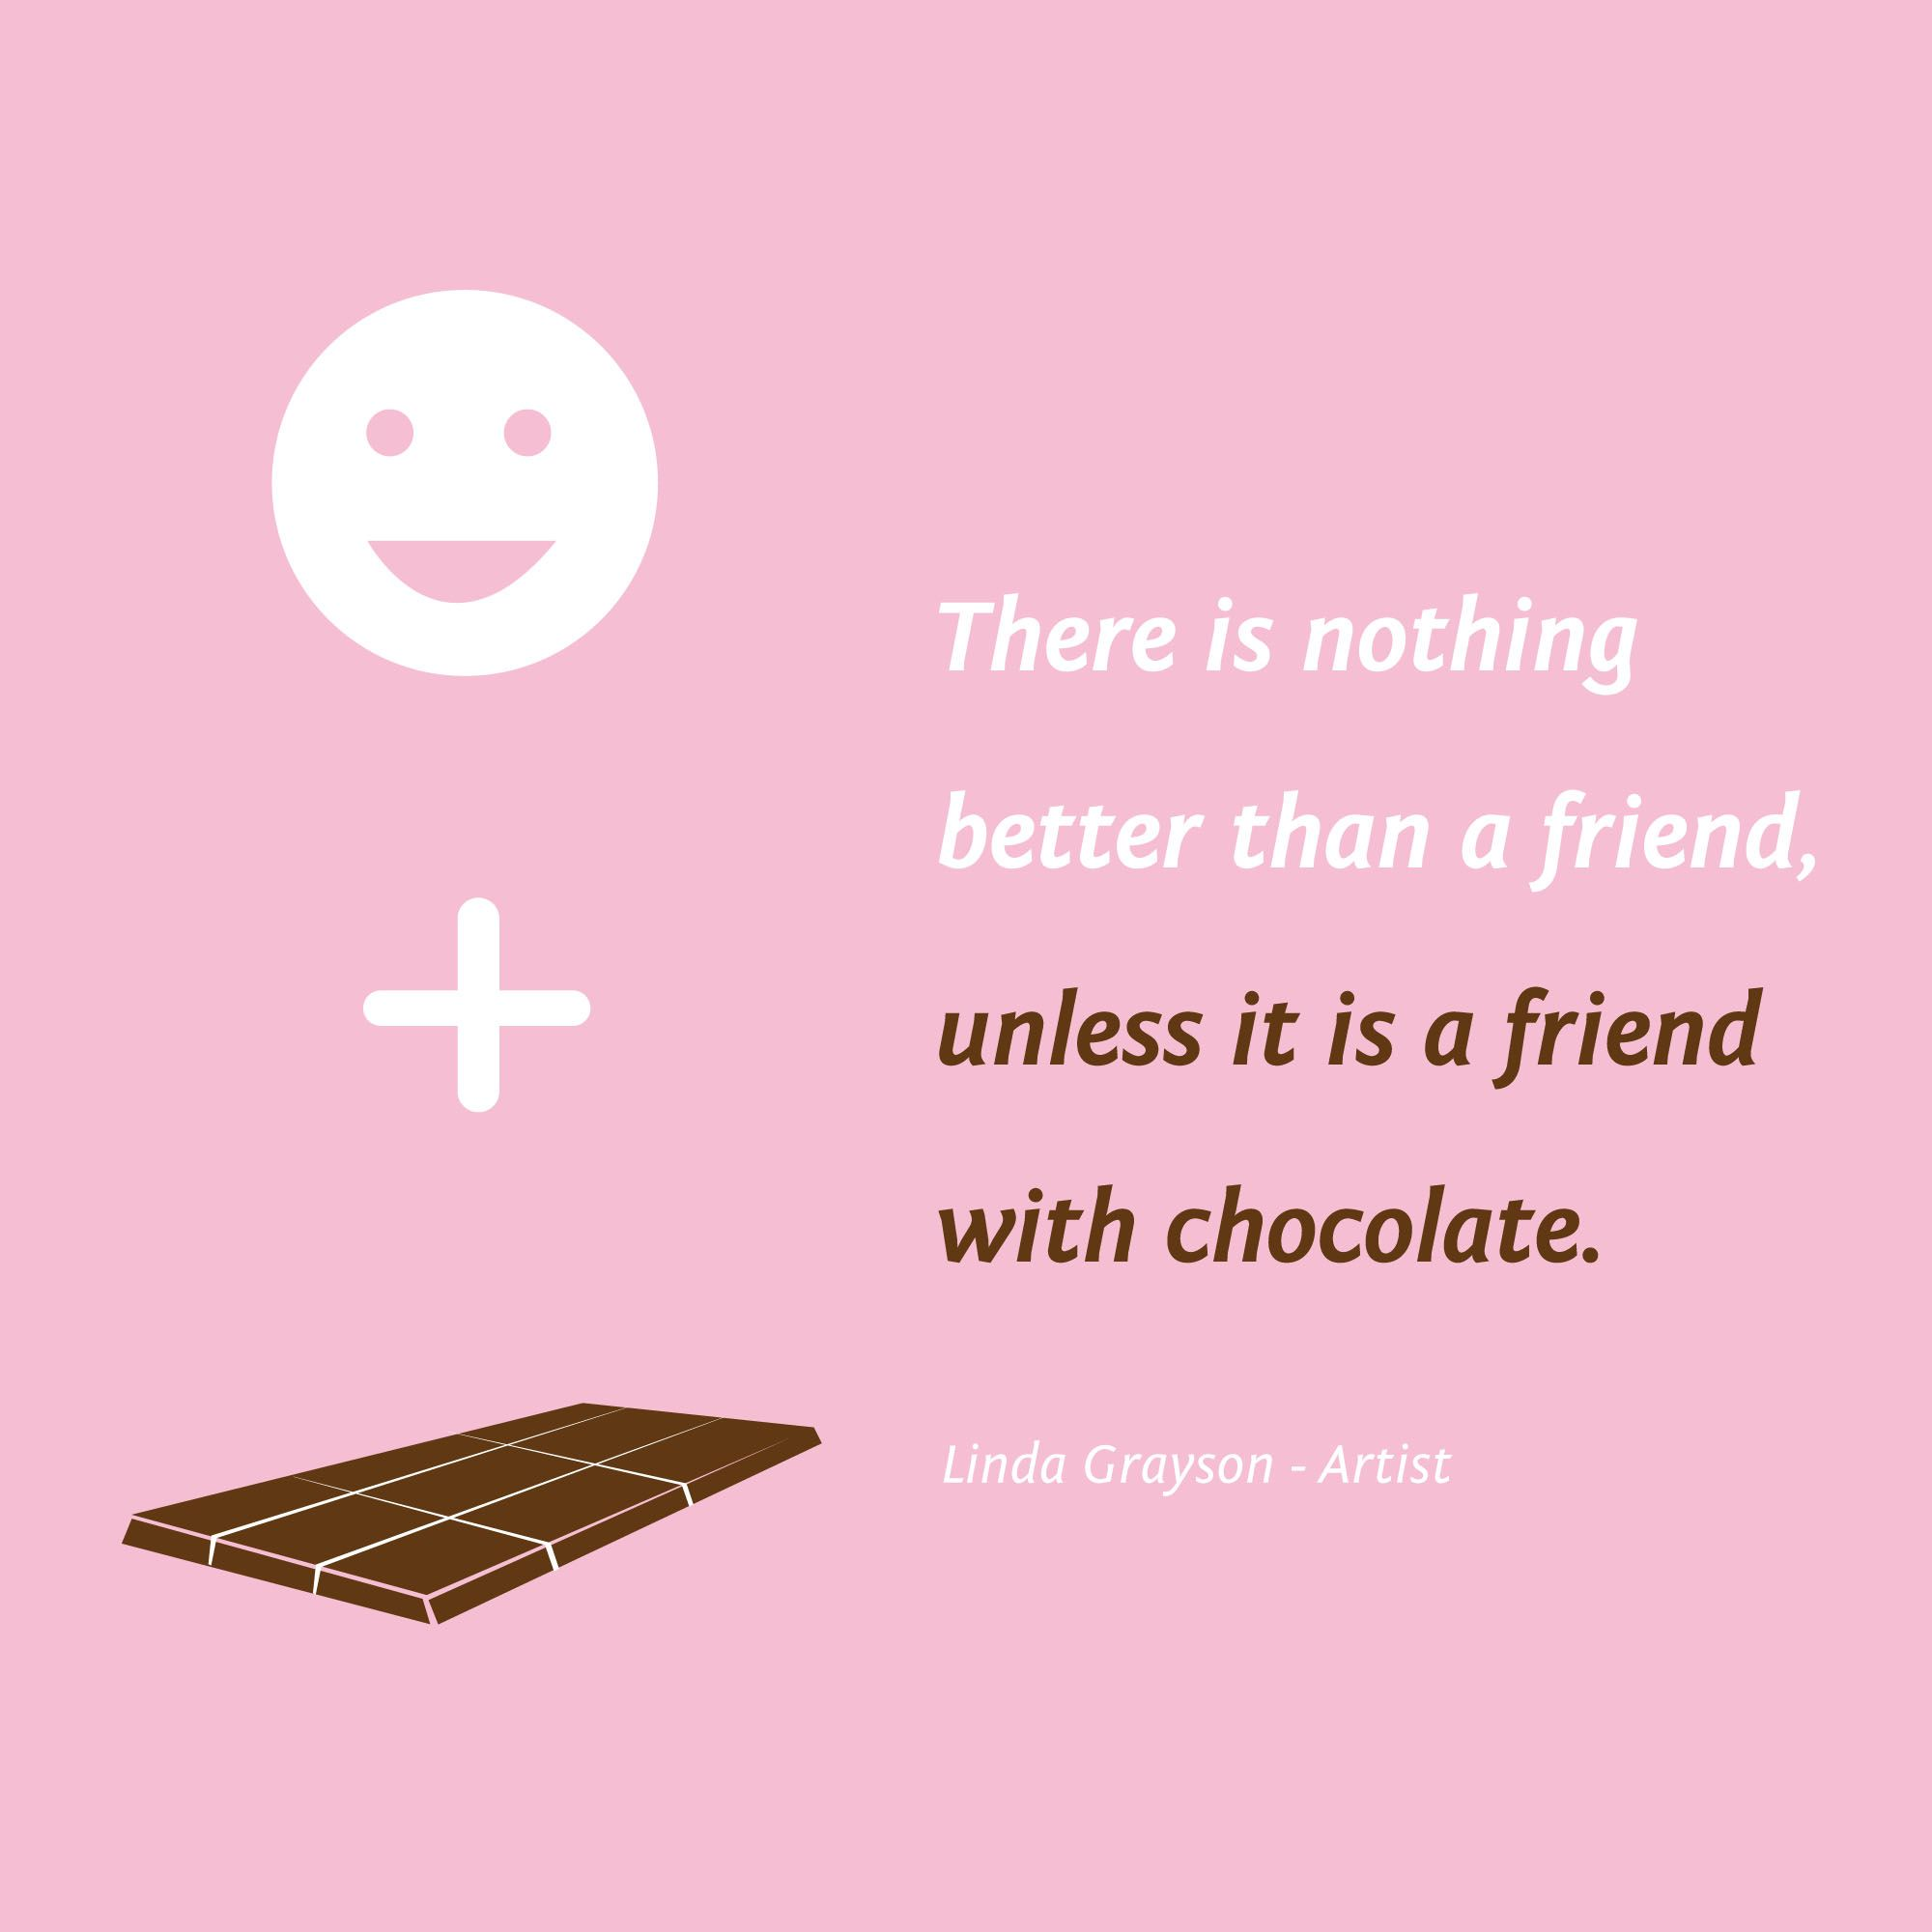 Friends Chocolate Friendship Quote Friendship Sister Quotes Friends Quotes Friendship Quotes